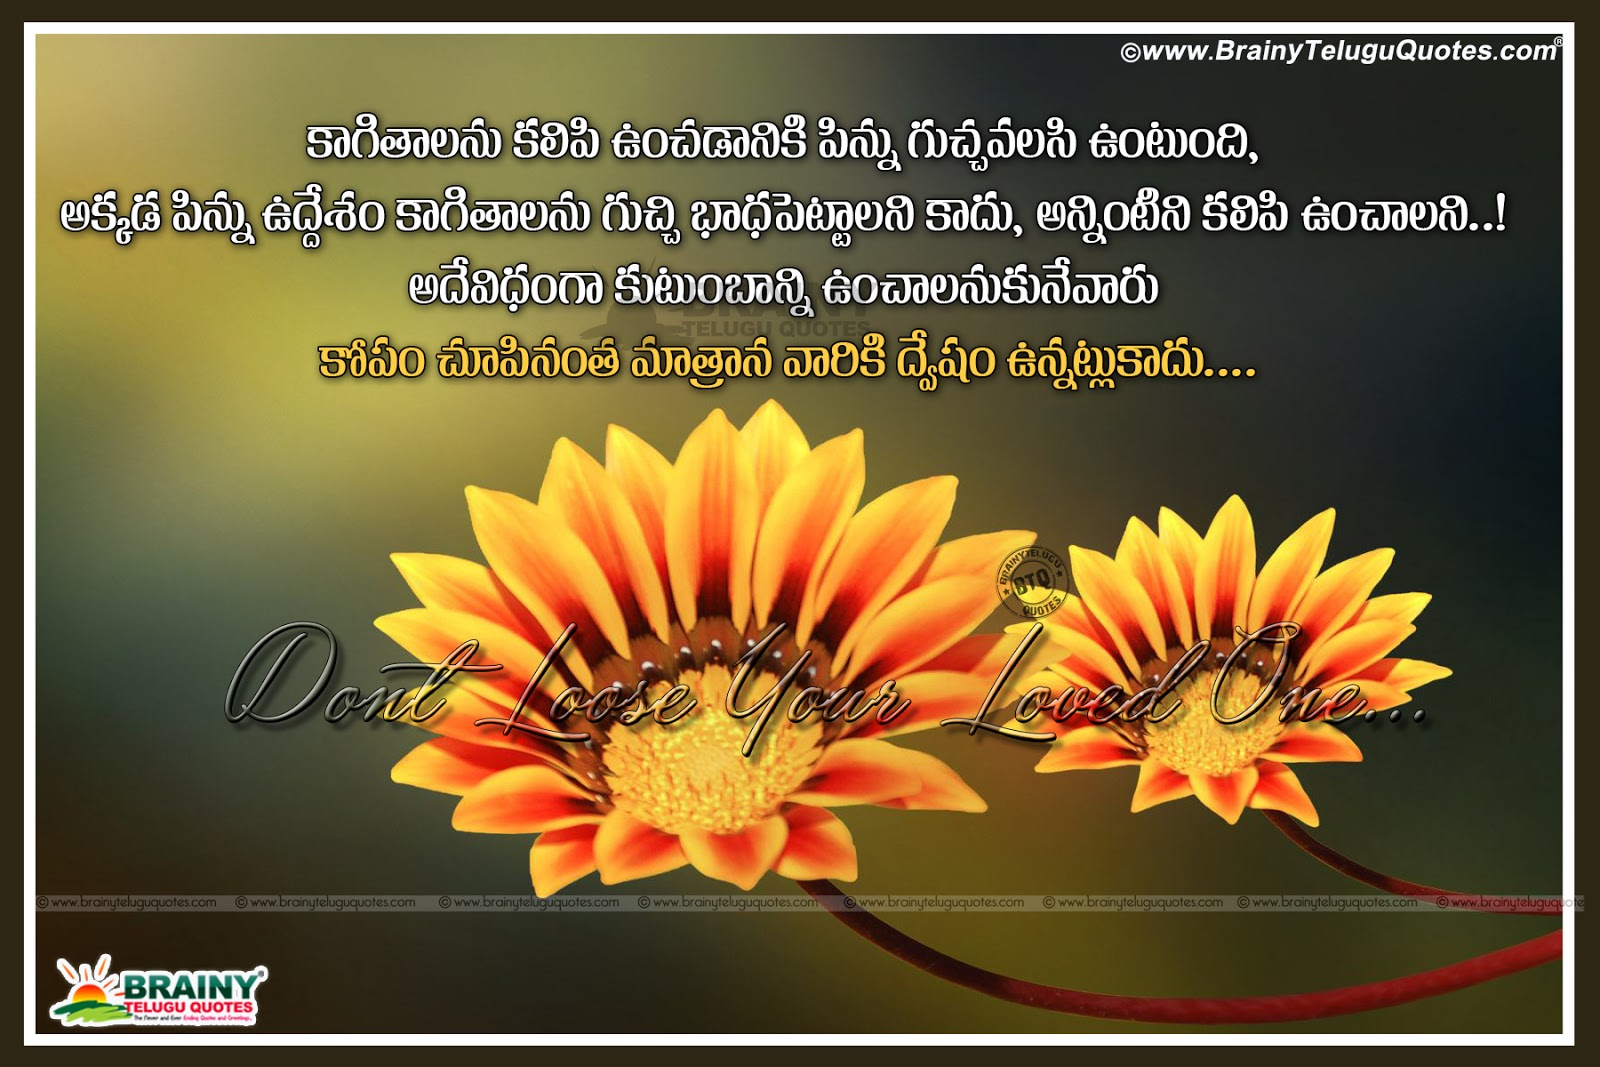 Top Telugu Family Value Quotes Relationship Value Messages Quotes In Telugu Brainyteluguquotes Comtelugu Quotes English Quotes Hindi Quotes Tamil Quotes Greetings